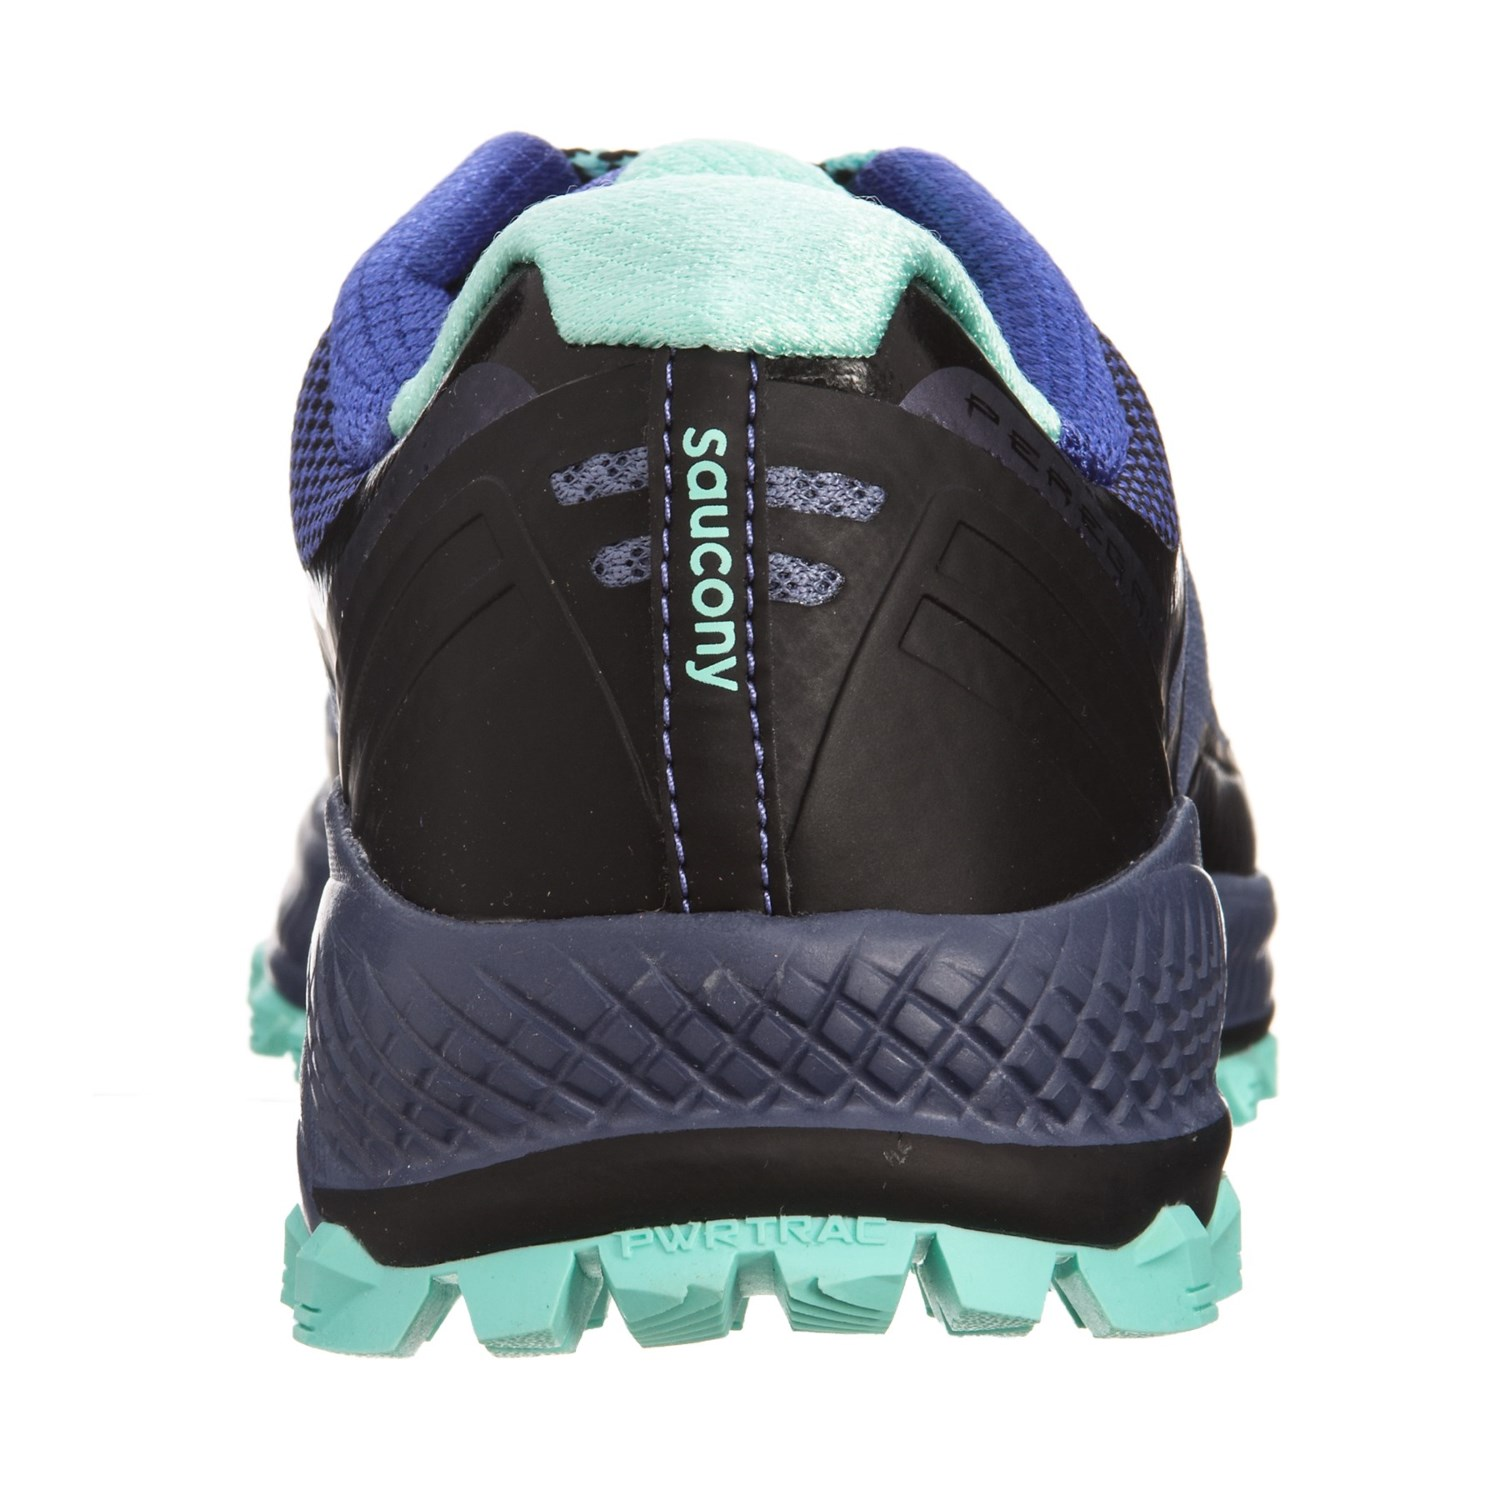 Saucony Peregrine 8 Trail Running Shoes (For Women) - Save 41% 20c72548287